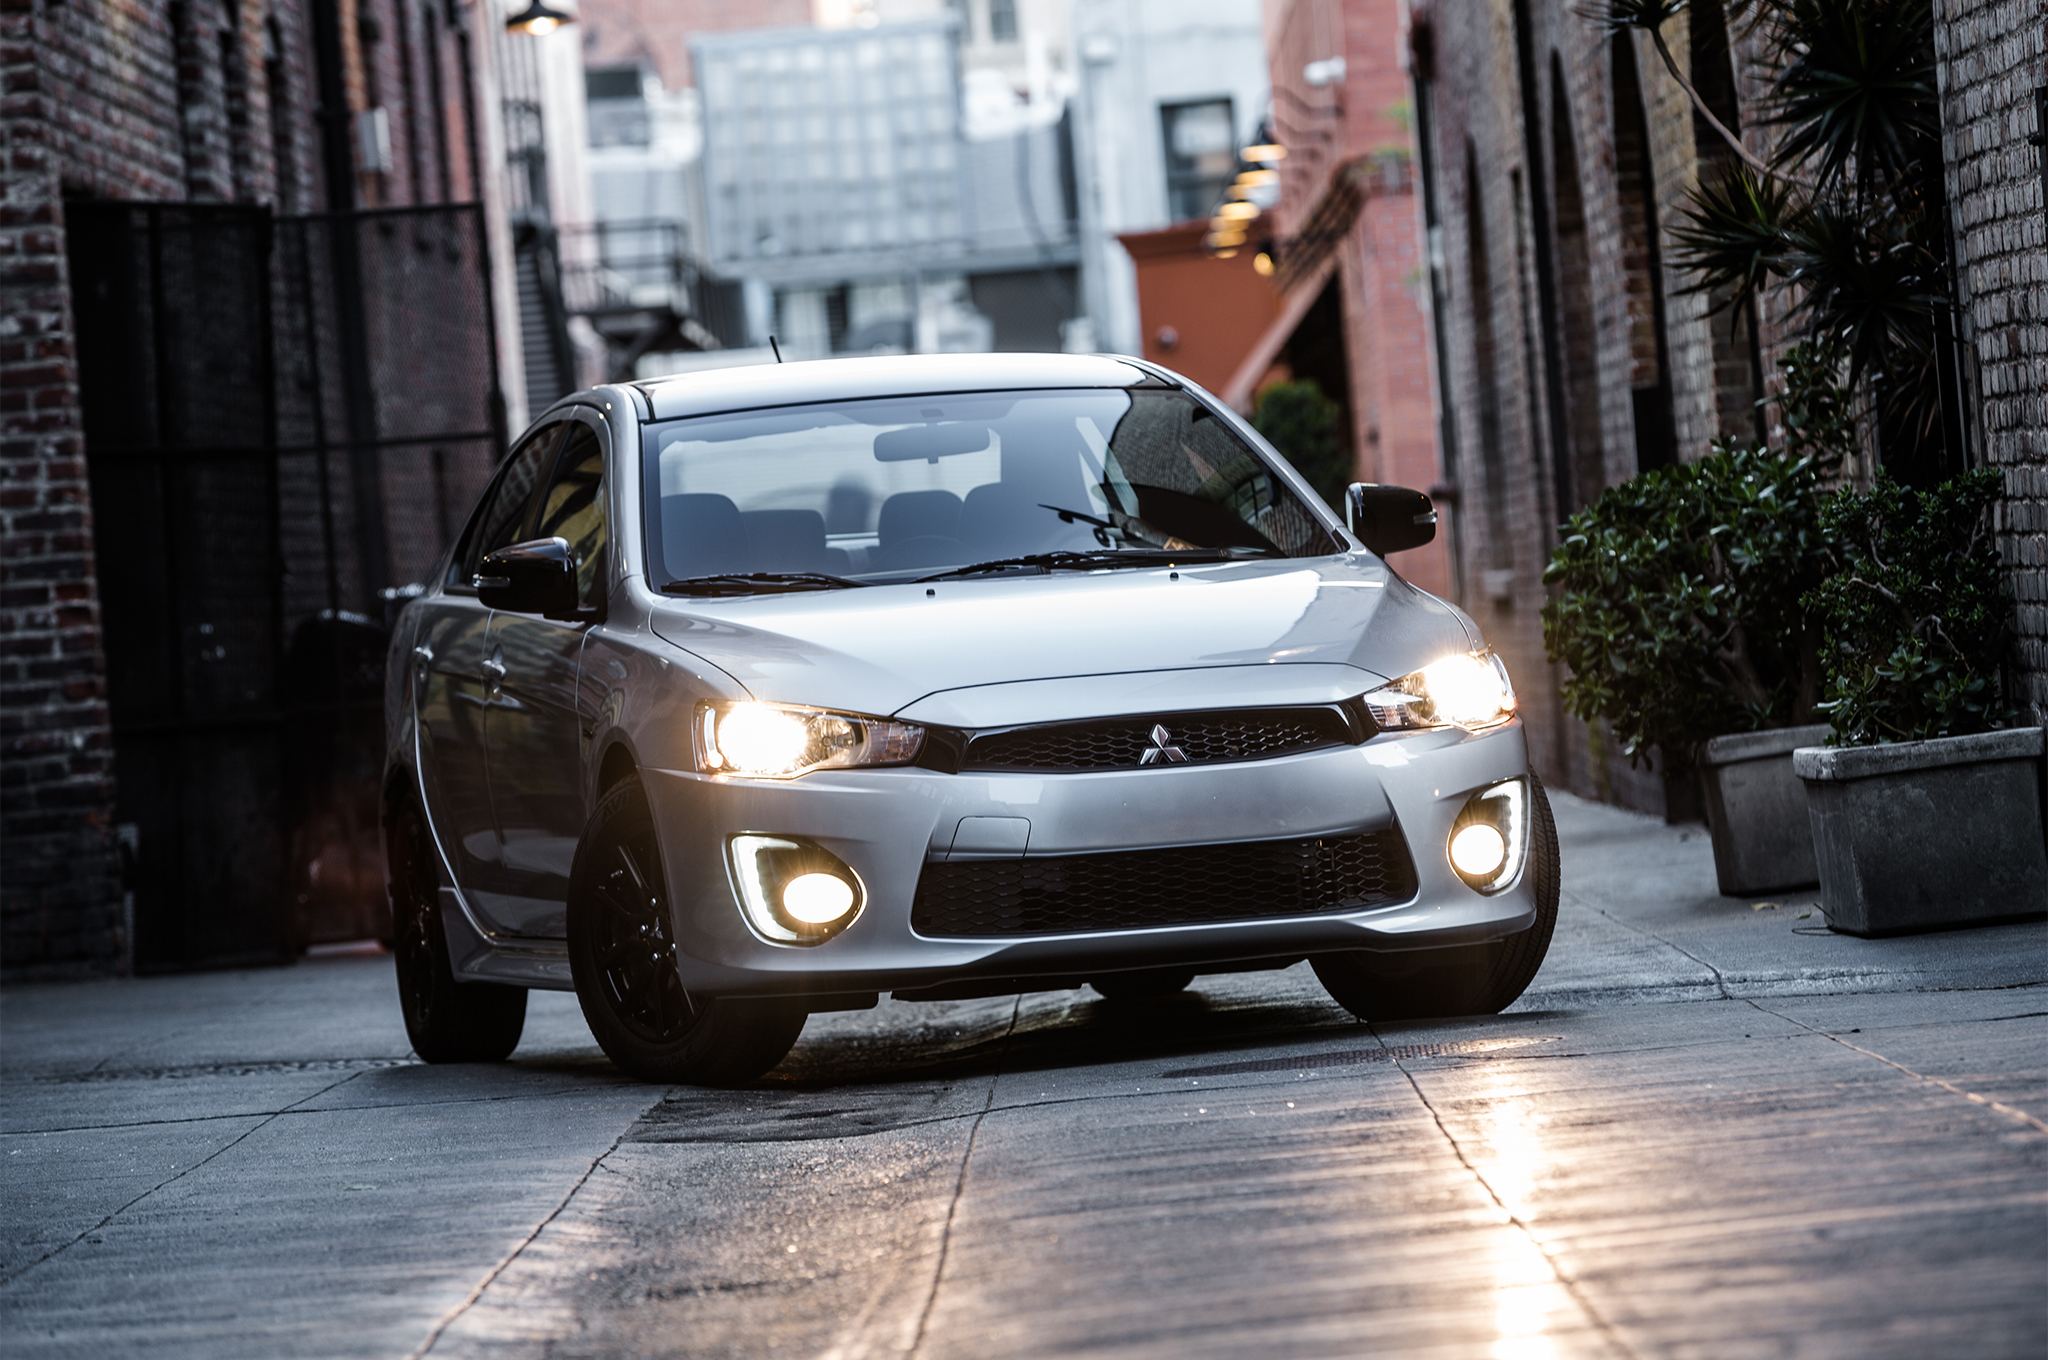 2017-Mitsubishi-Lancer-Limited-Edition-headlights